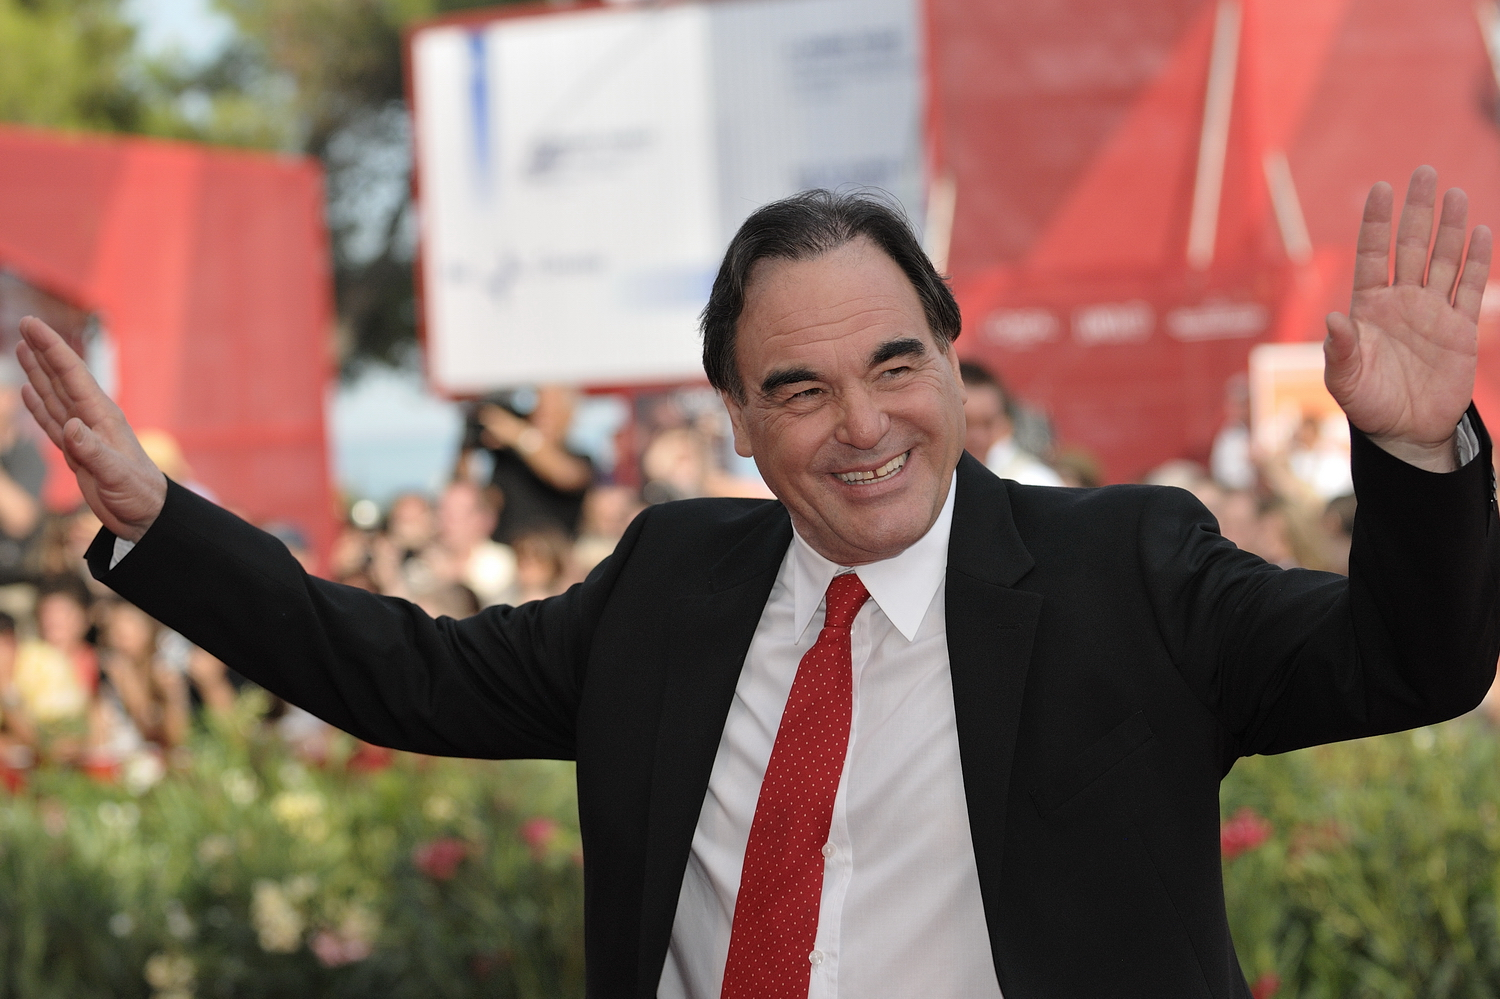 Oliver Stone Films Facts